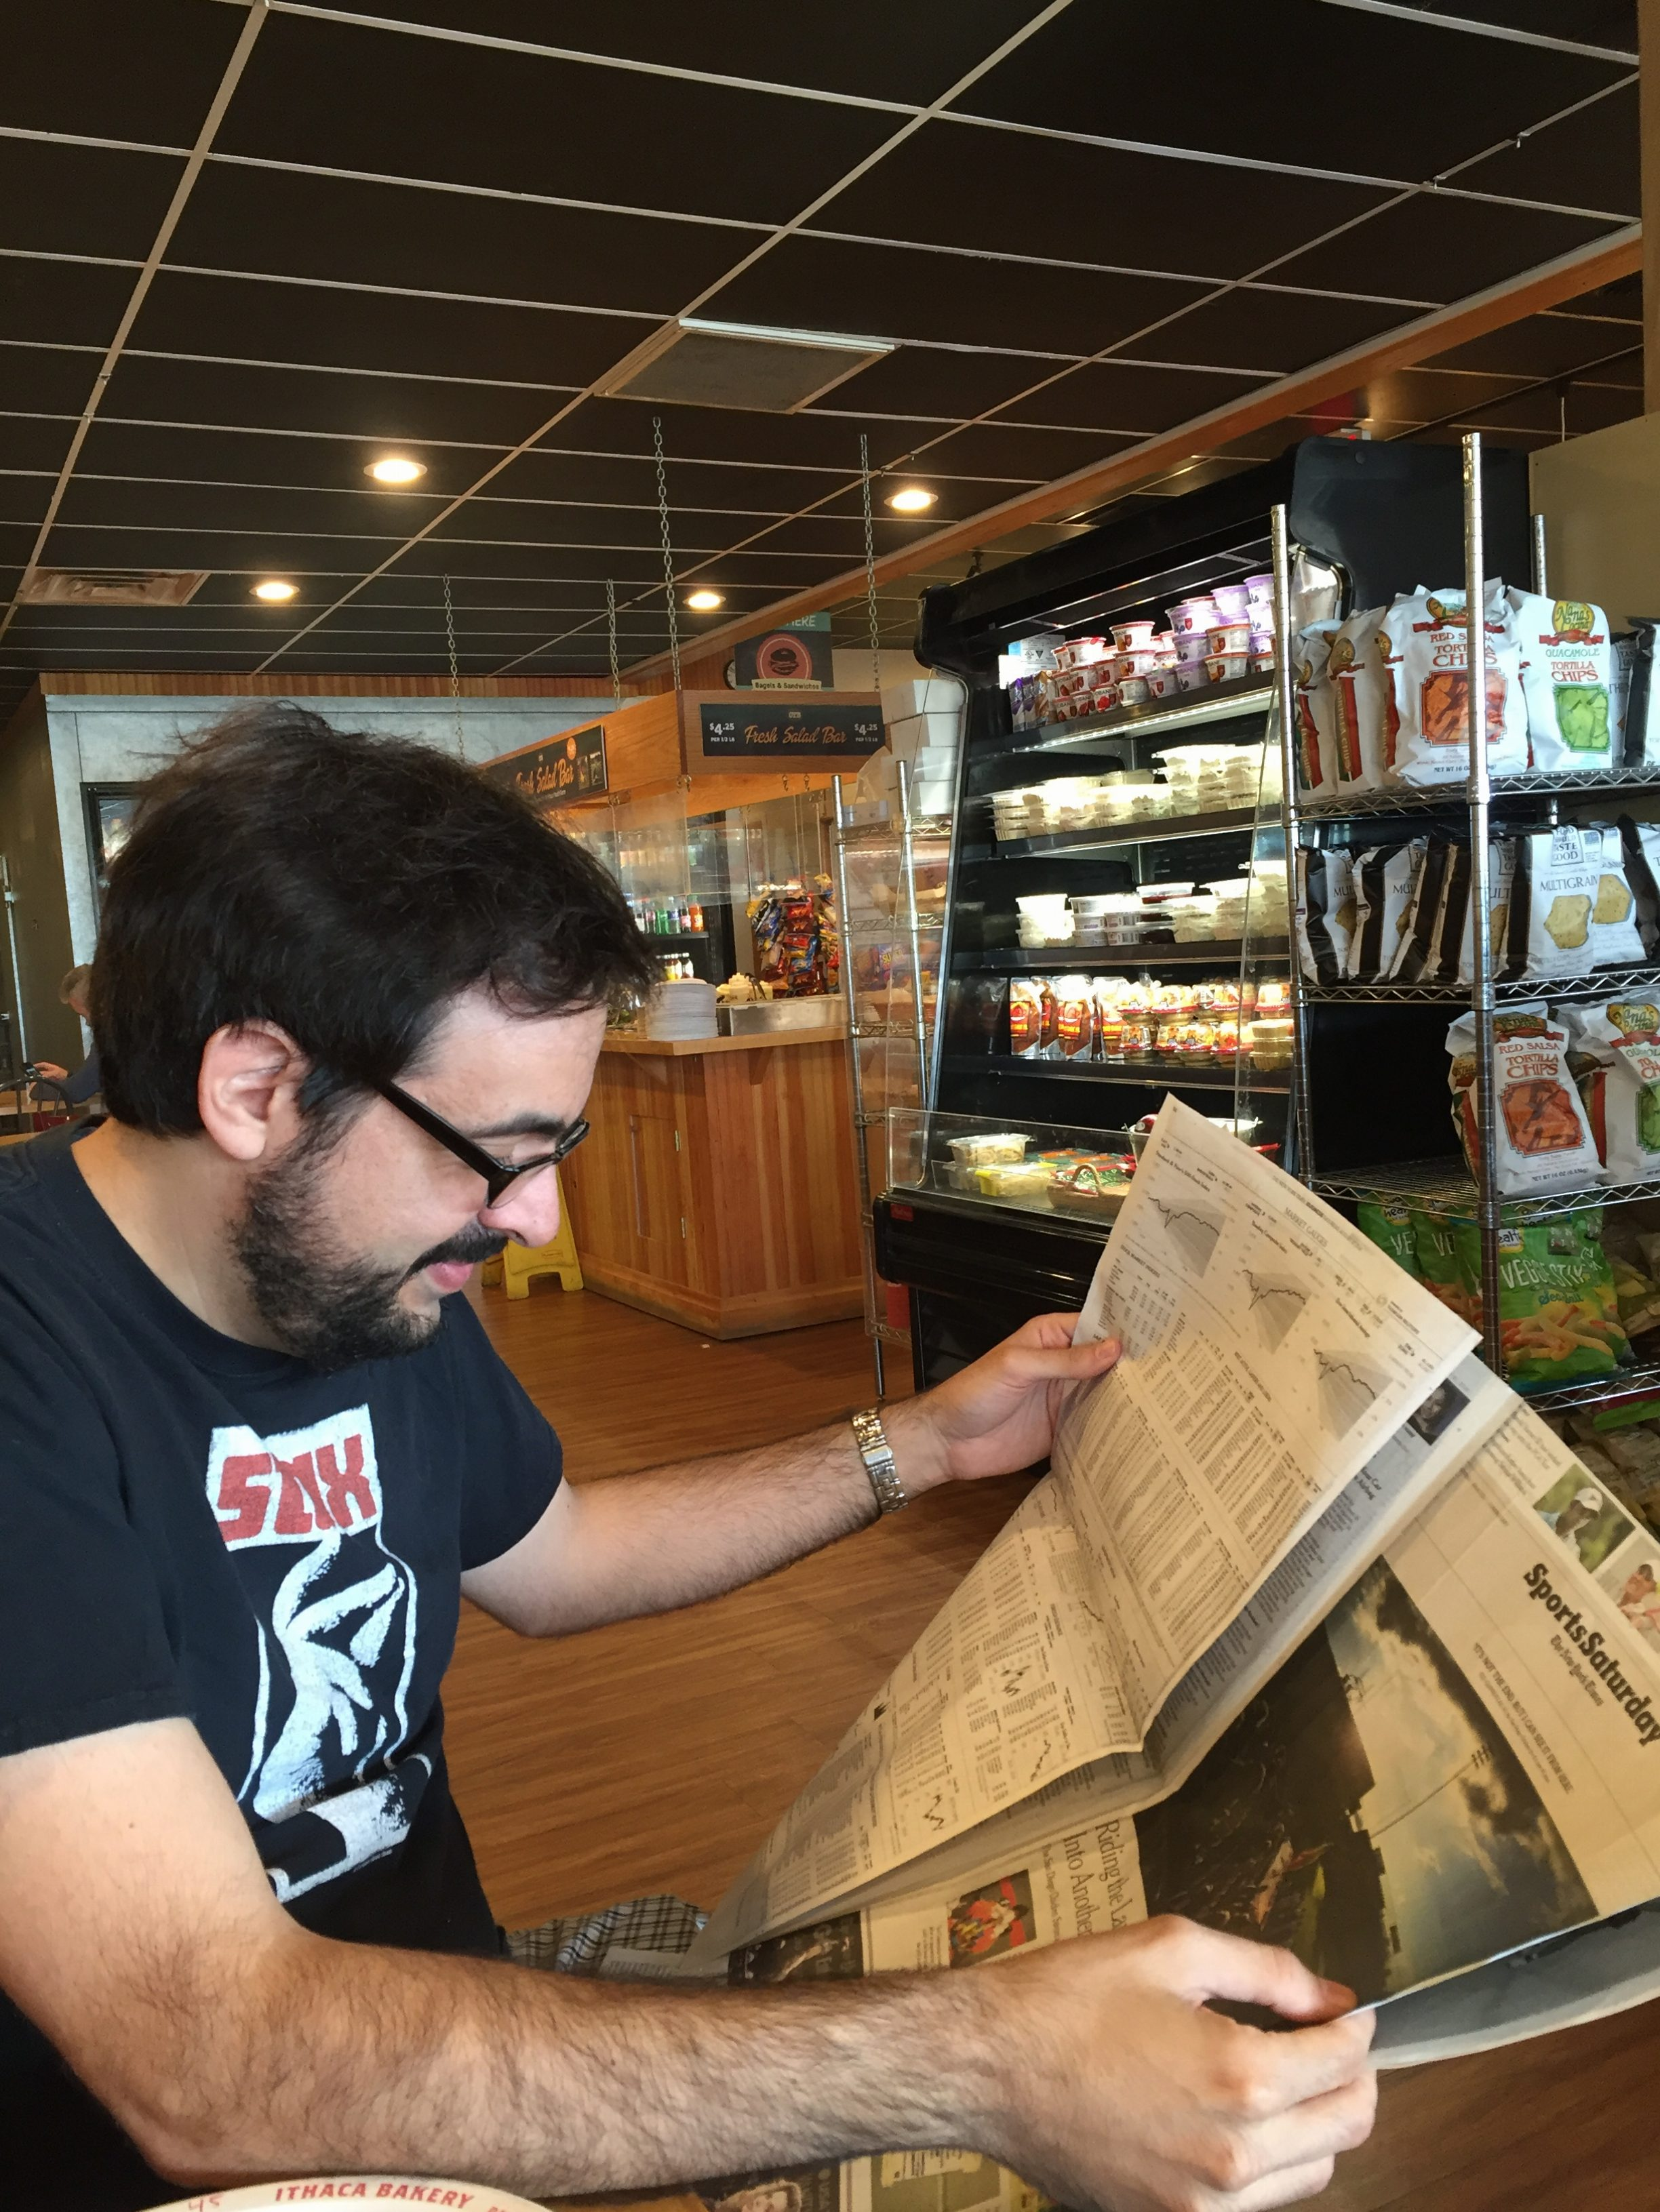 Pete Croatto reading the paper.